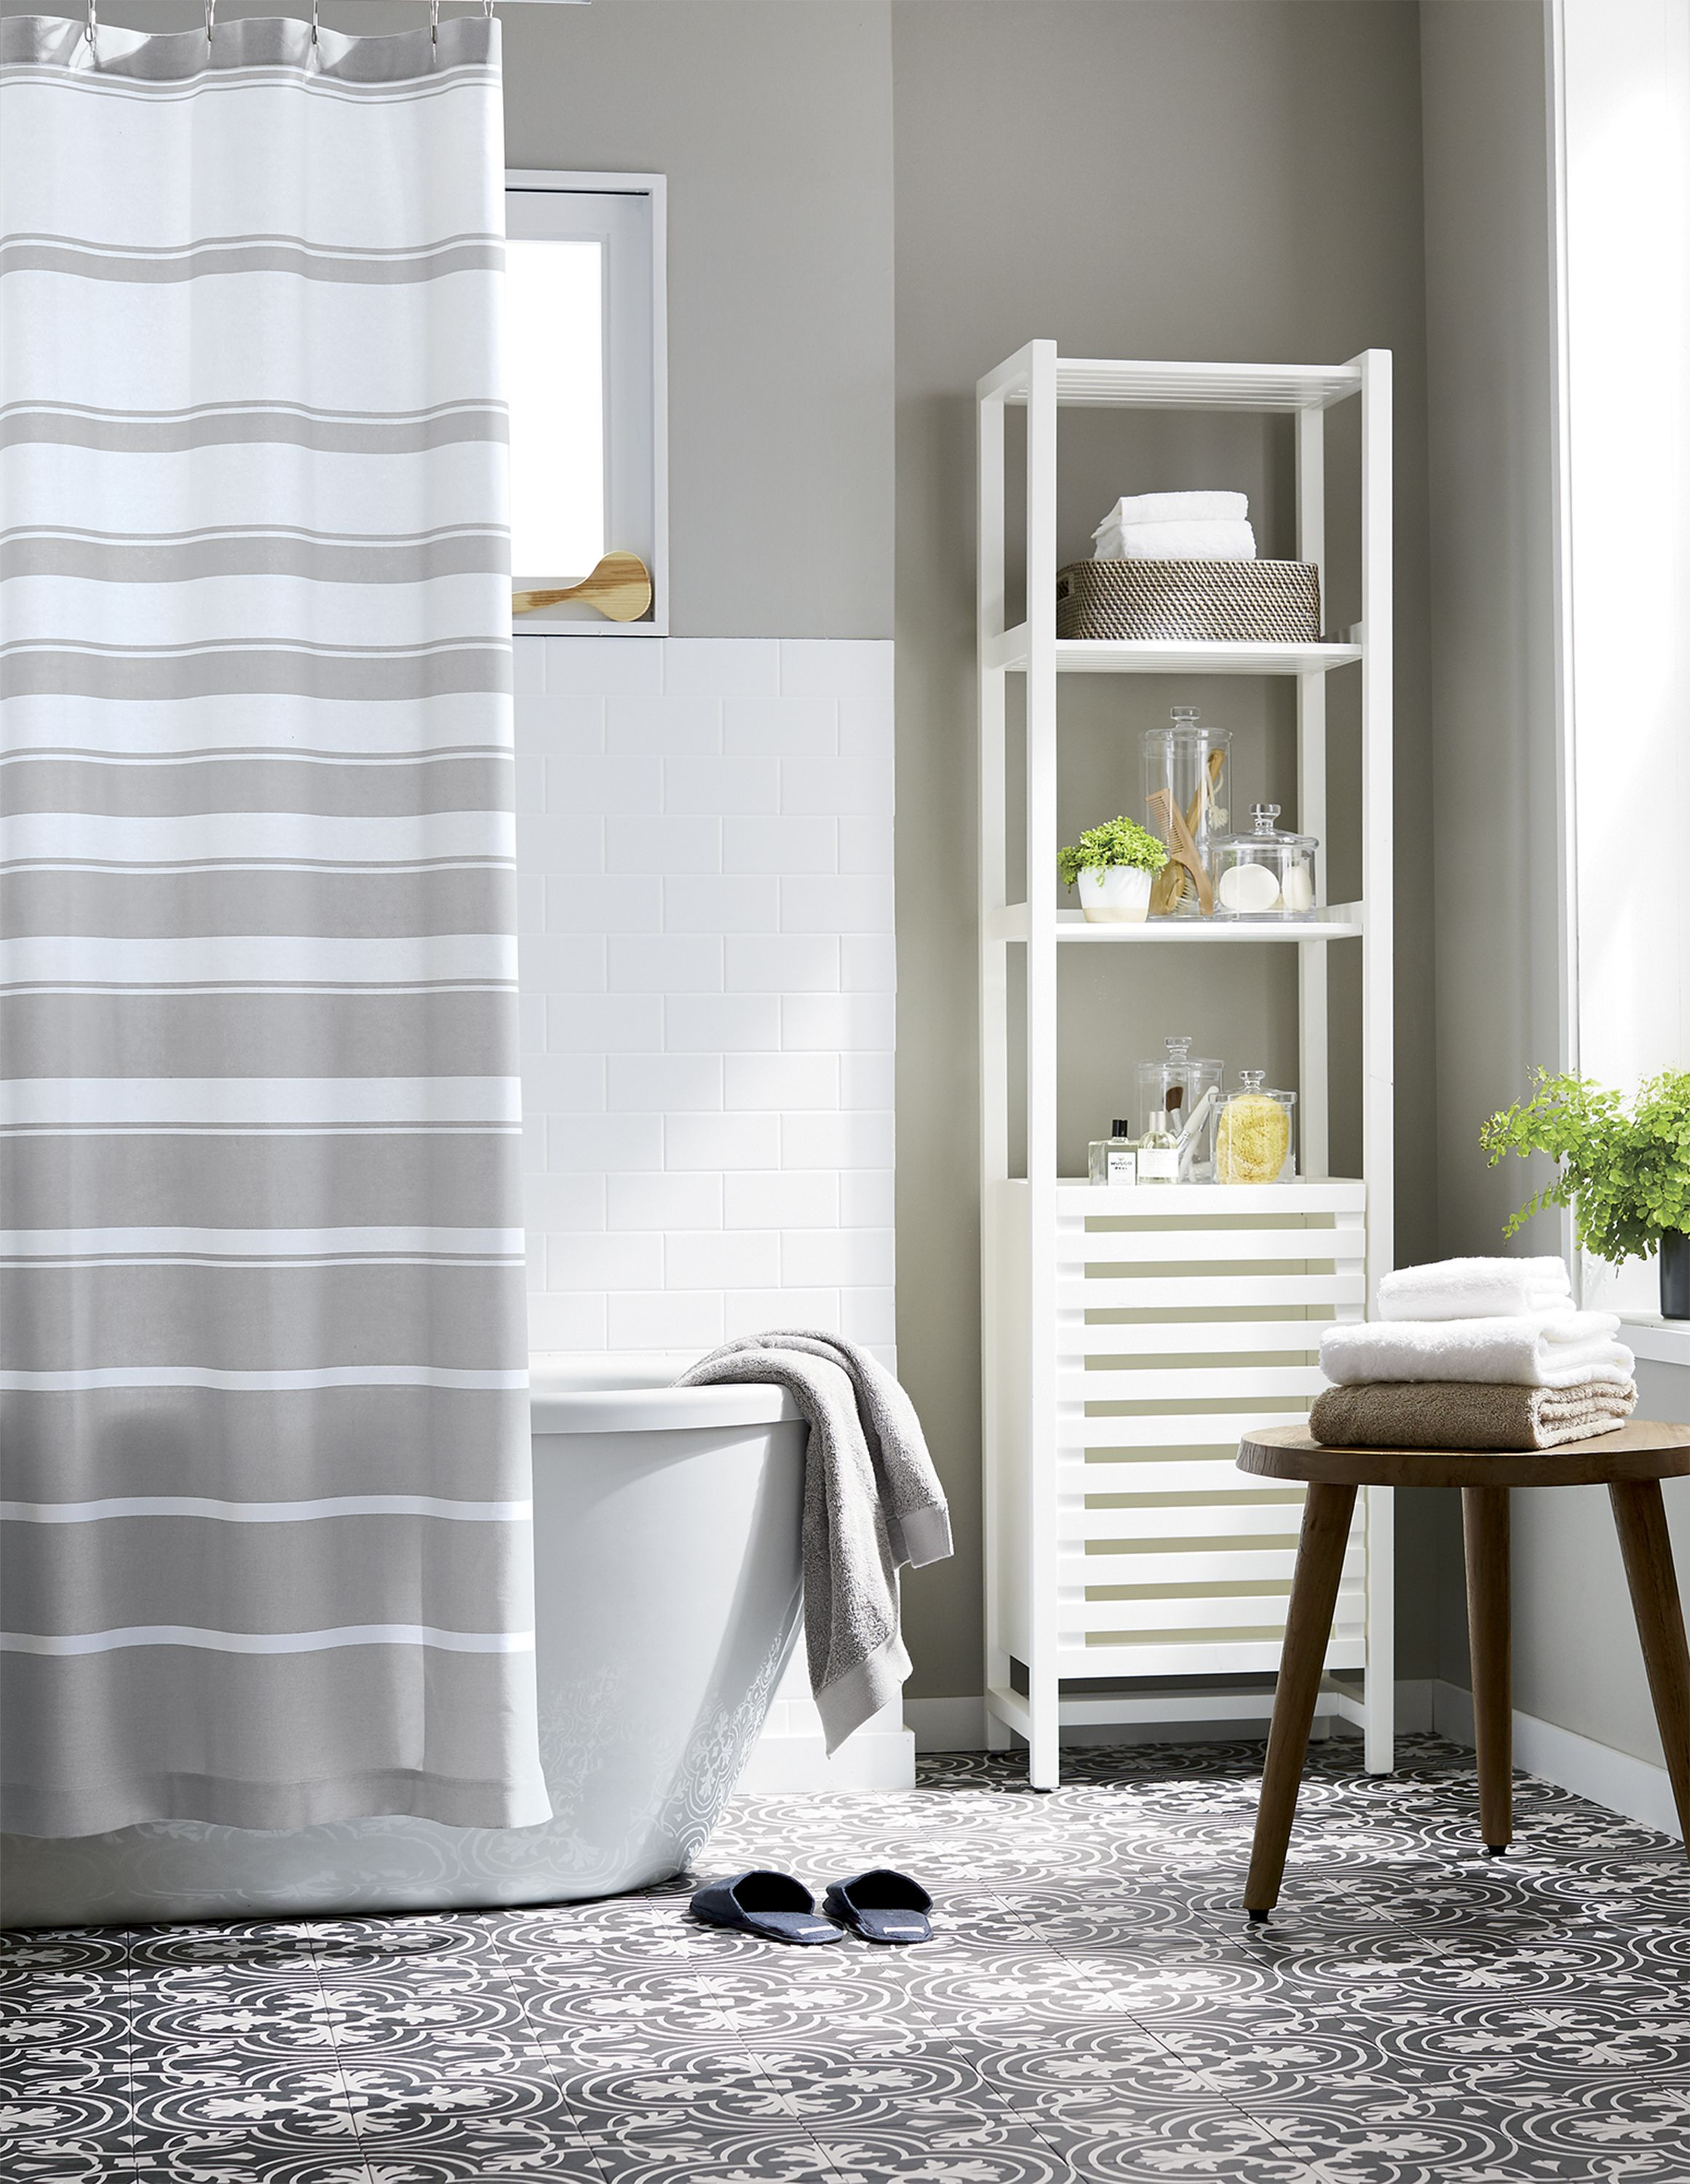 Banya White Bath Tower | Open shelves, Bath accessories and Tower